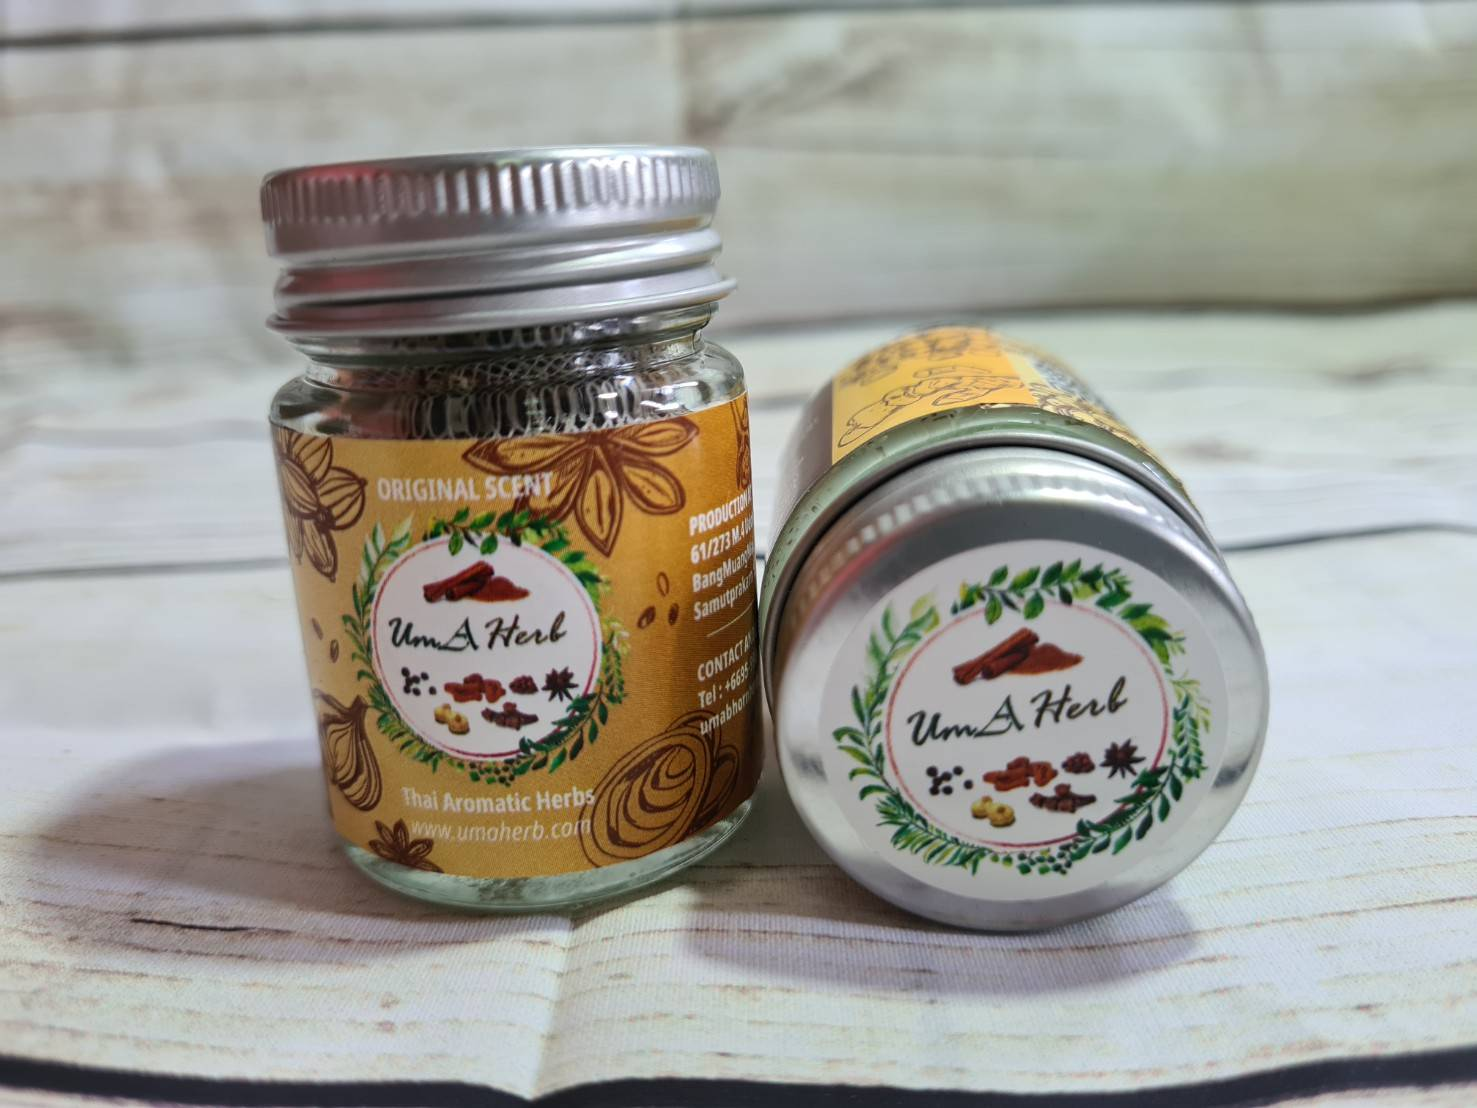 Uma Herb Thai Aromatic Herbs Original Scent Inhaler Thai Herb Help To  Relax and Refresh Makes Breathing Easier